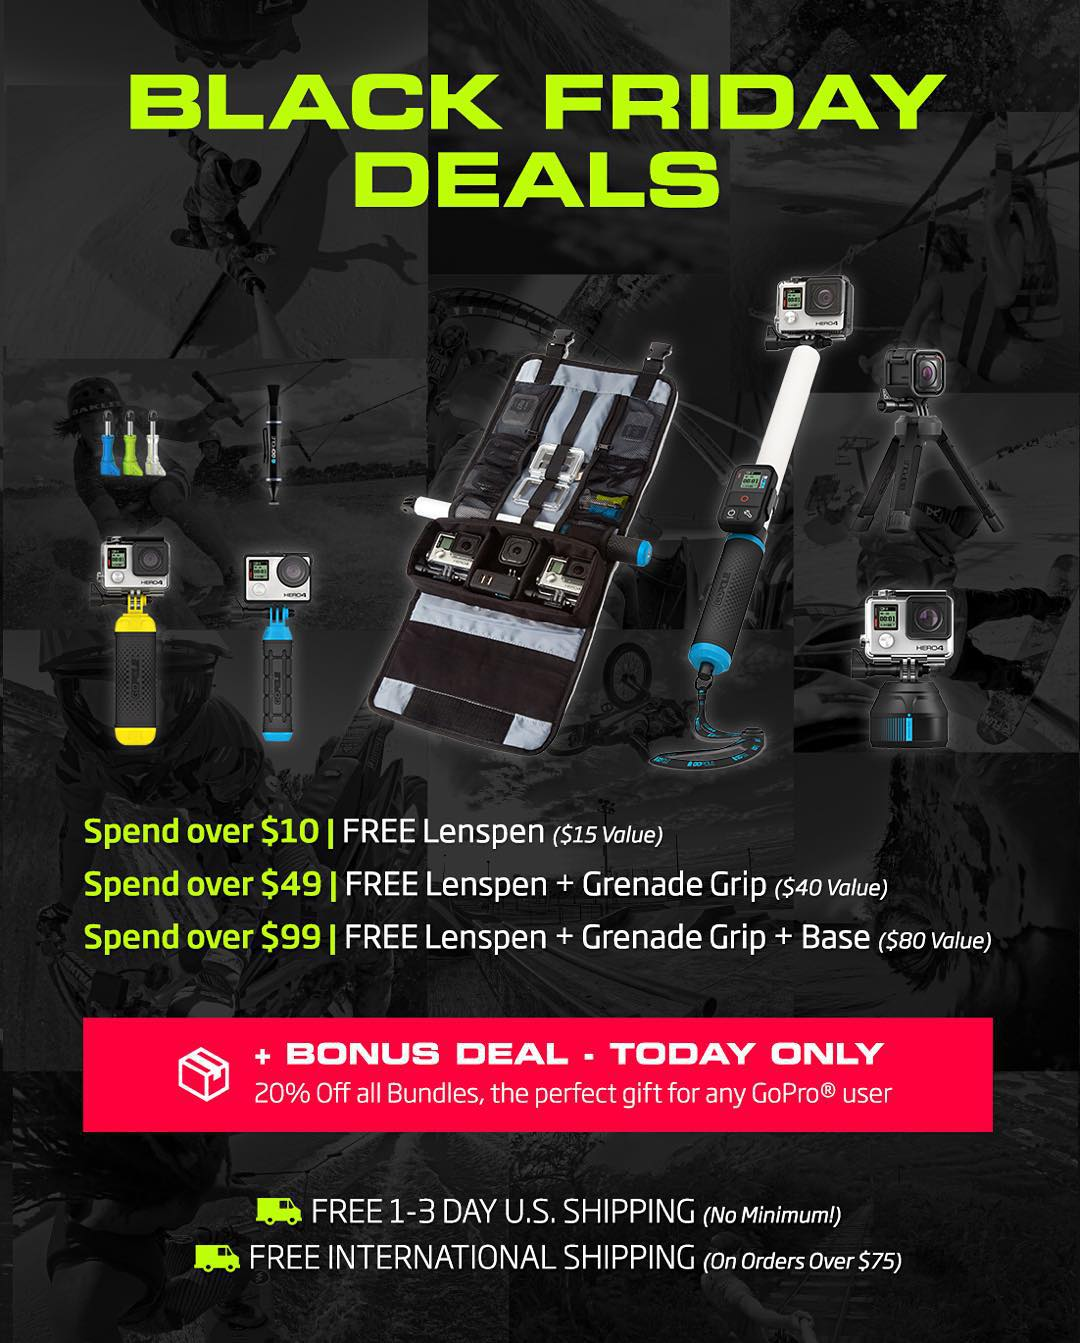 Black Friday Deals! Spend more, save more. Today ONLY receive 20% off all GoPole Bundles + up to $80 in free items + FREE 1-3 day U.S. shipping or FREE International shipping on orders over $75. #gopro #gopole #blackfriday #blackfriday2015